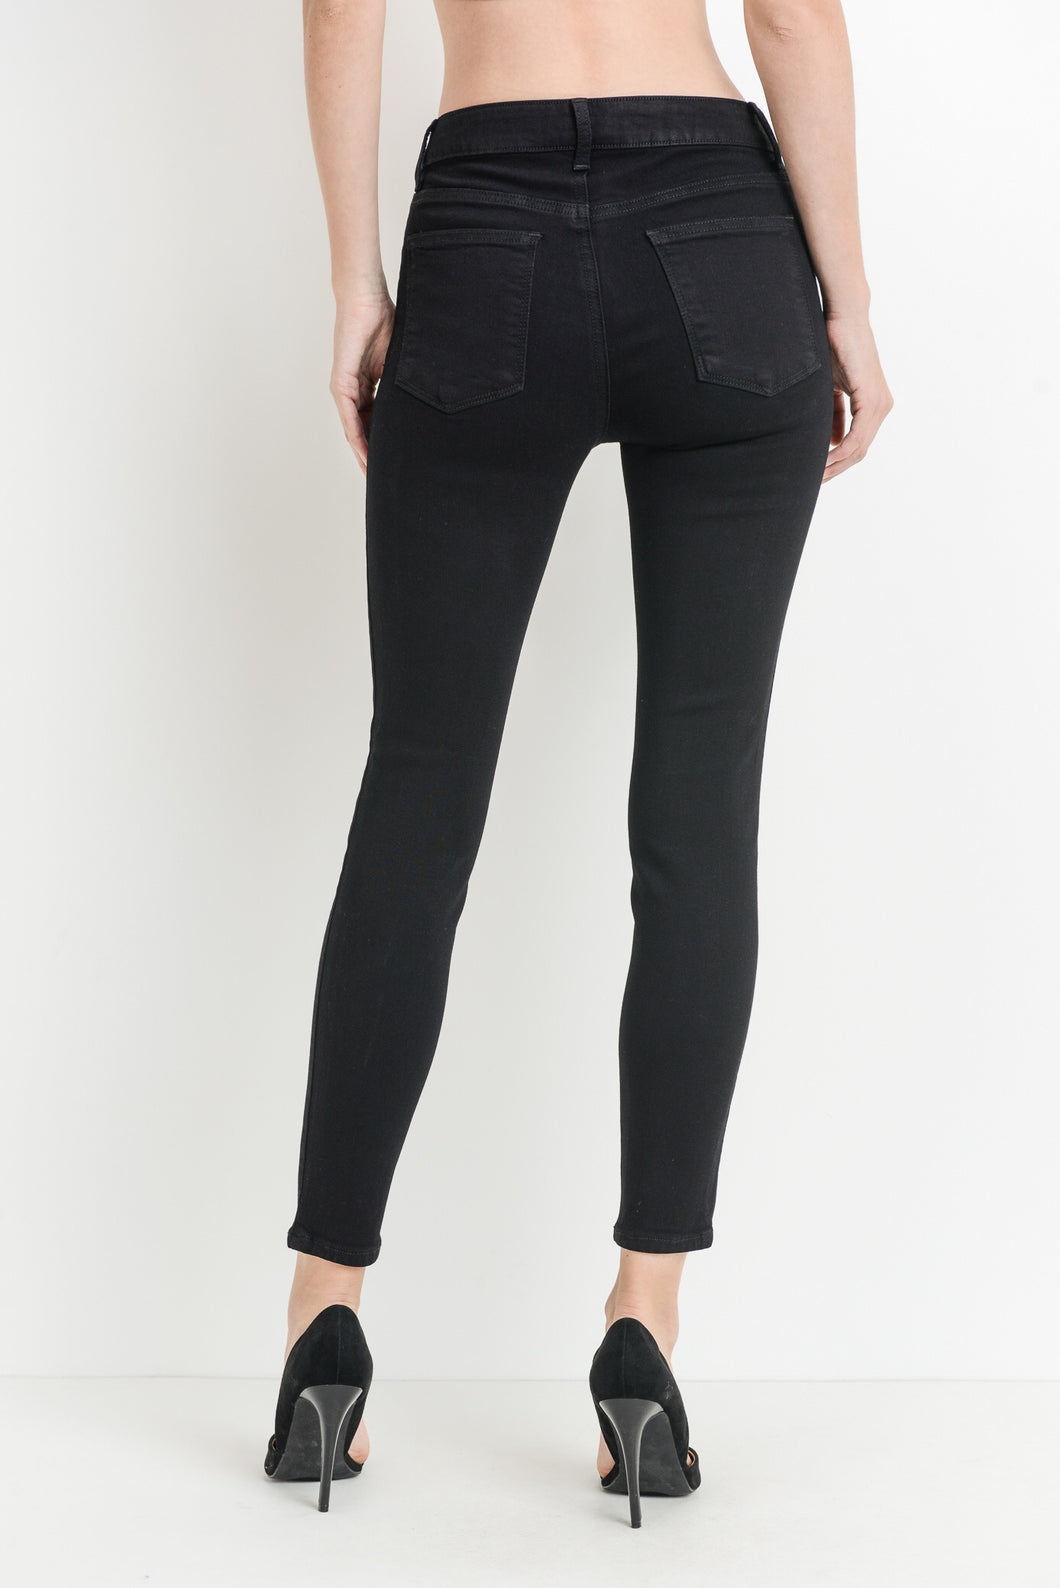 Jenny High Rise Black Jeans